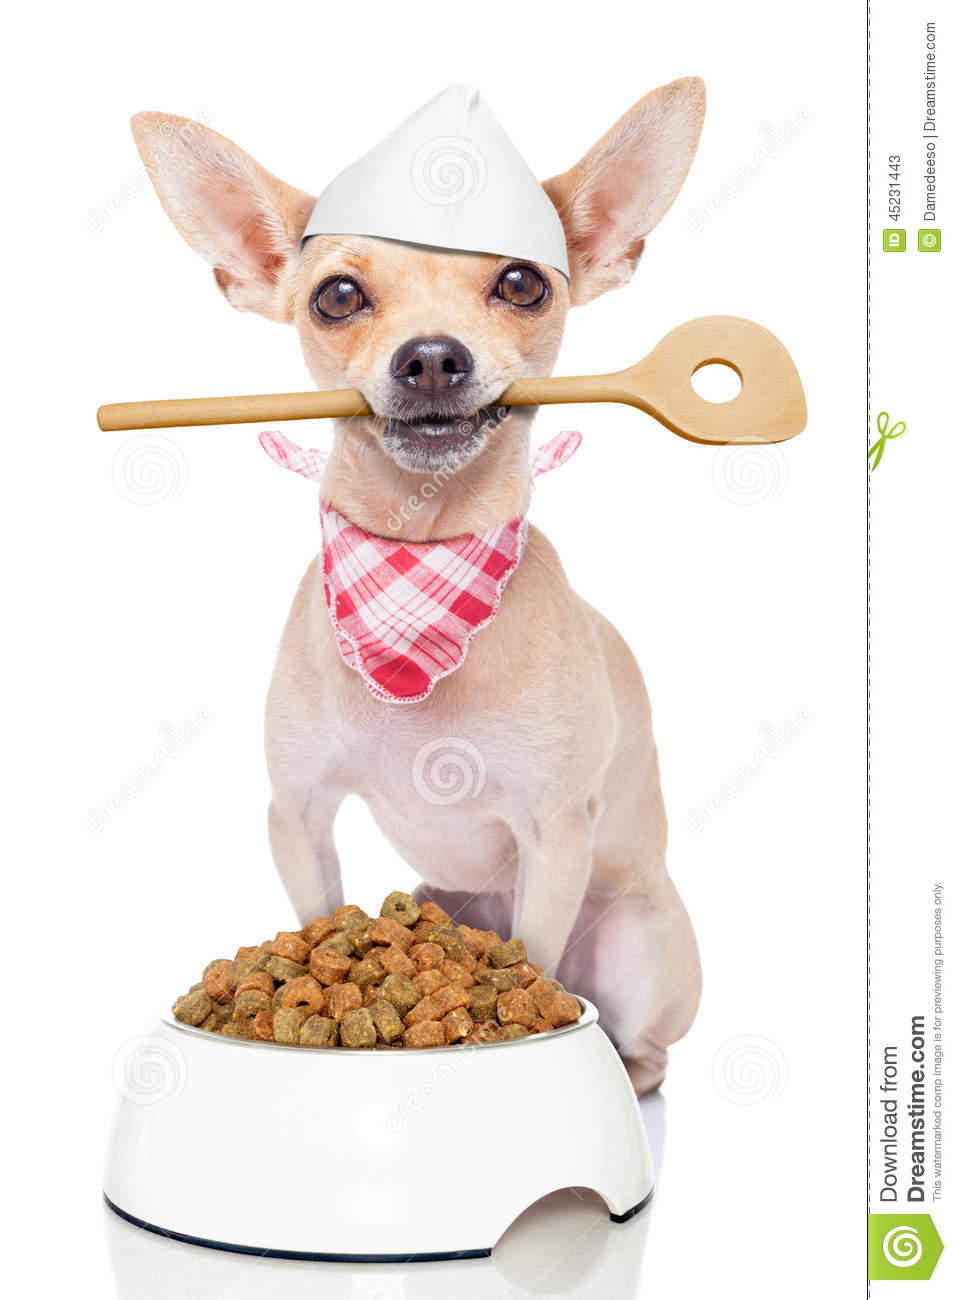 Dog Holding Dog Food In Mouth